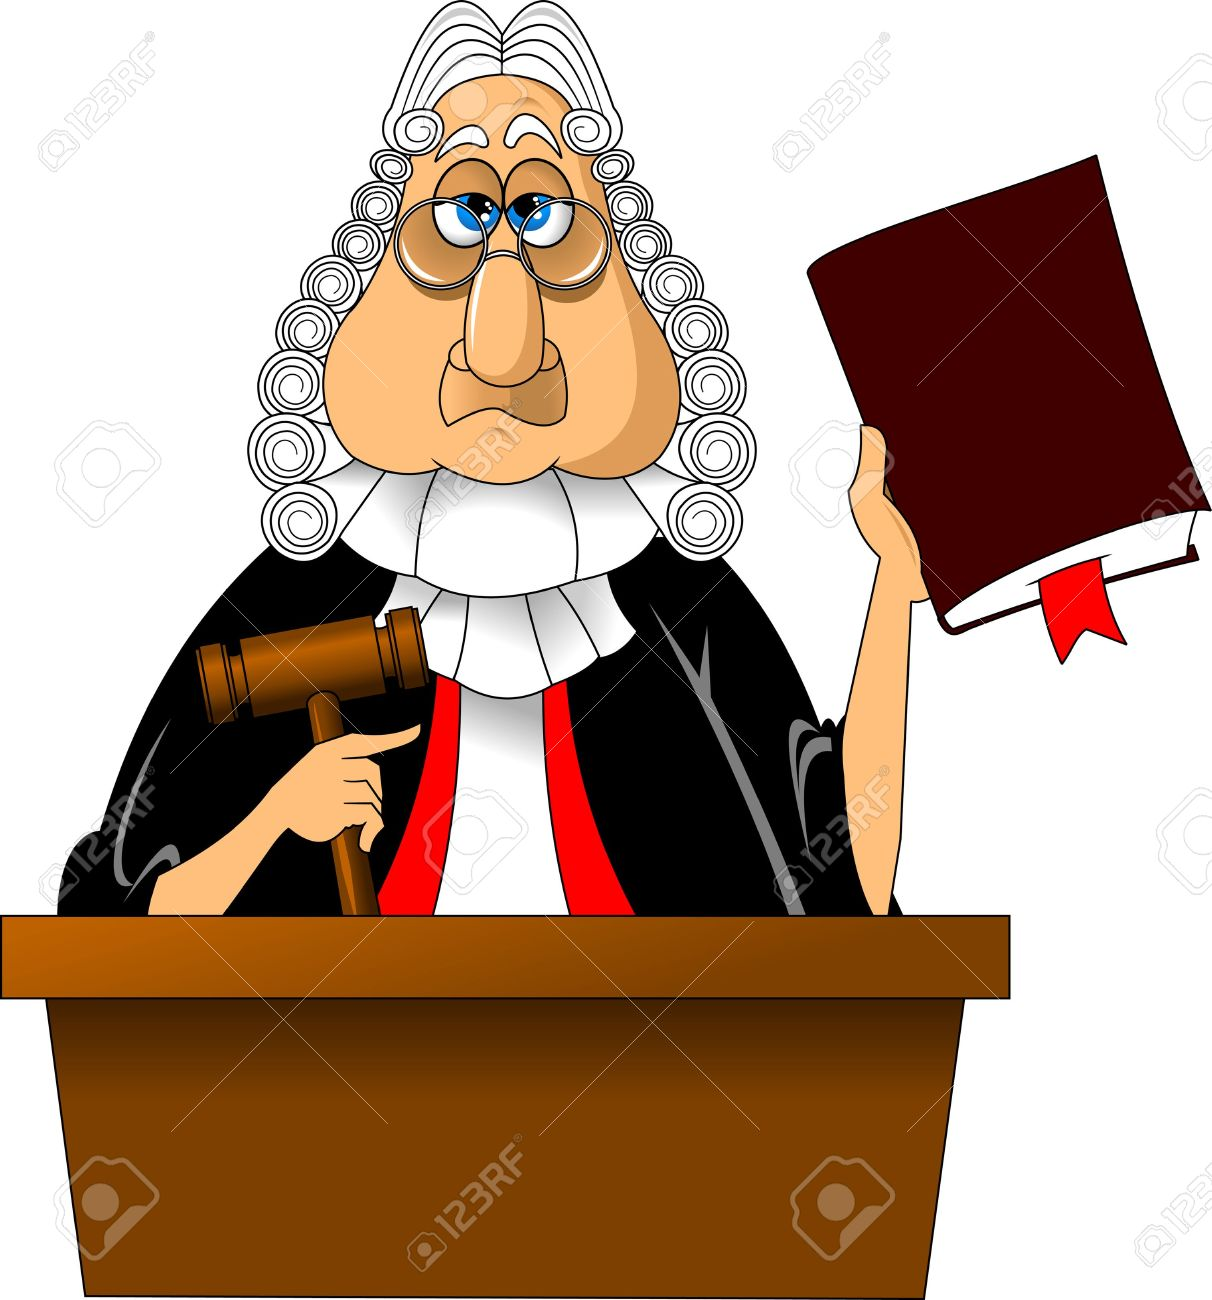 judge clip art free clipart panda free clipart images rh clipartpanda com judge clipart free clipart judge hammer